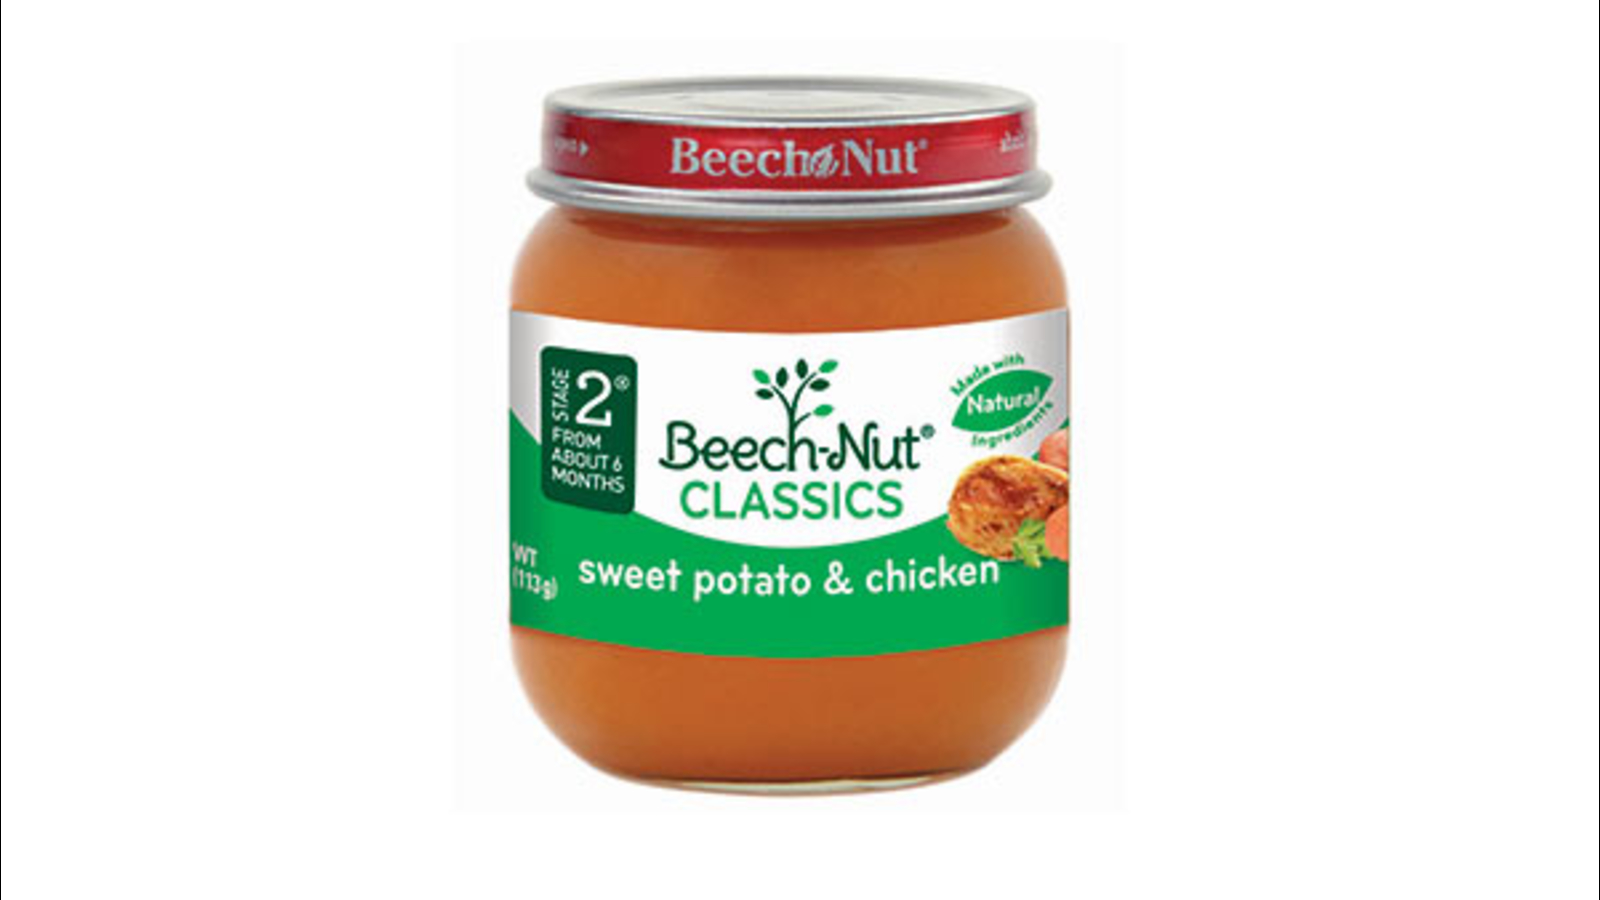 Beech Nut Baby Food Recalled After Glass Found In Jars